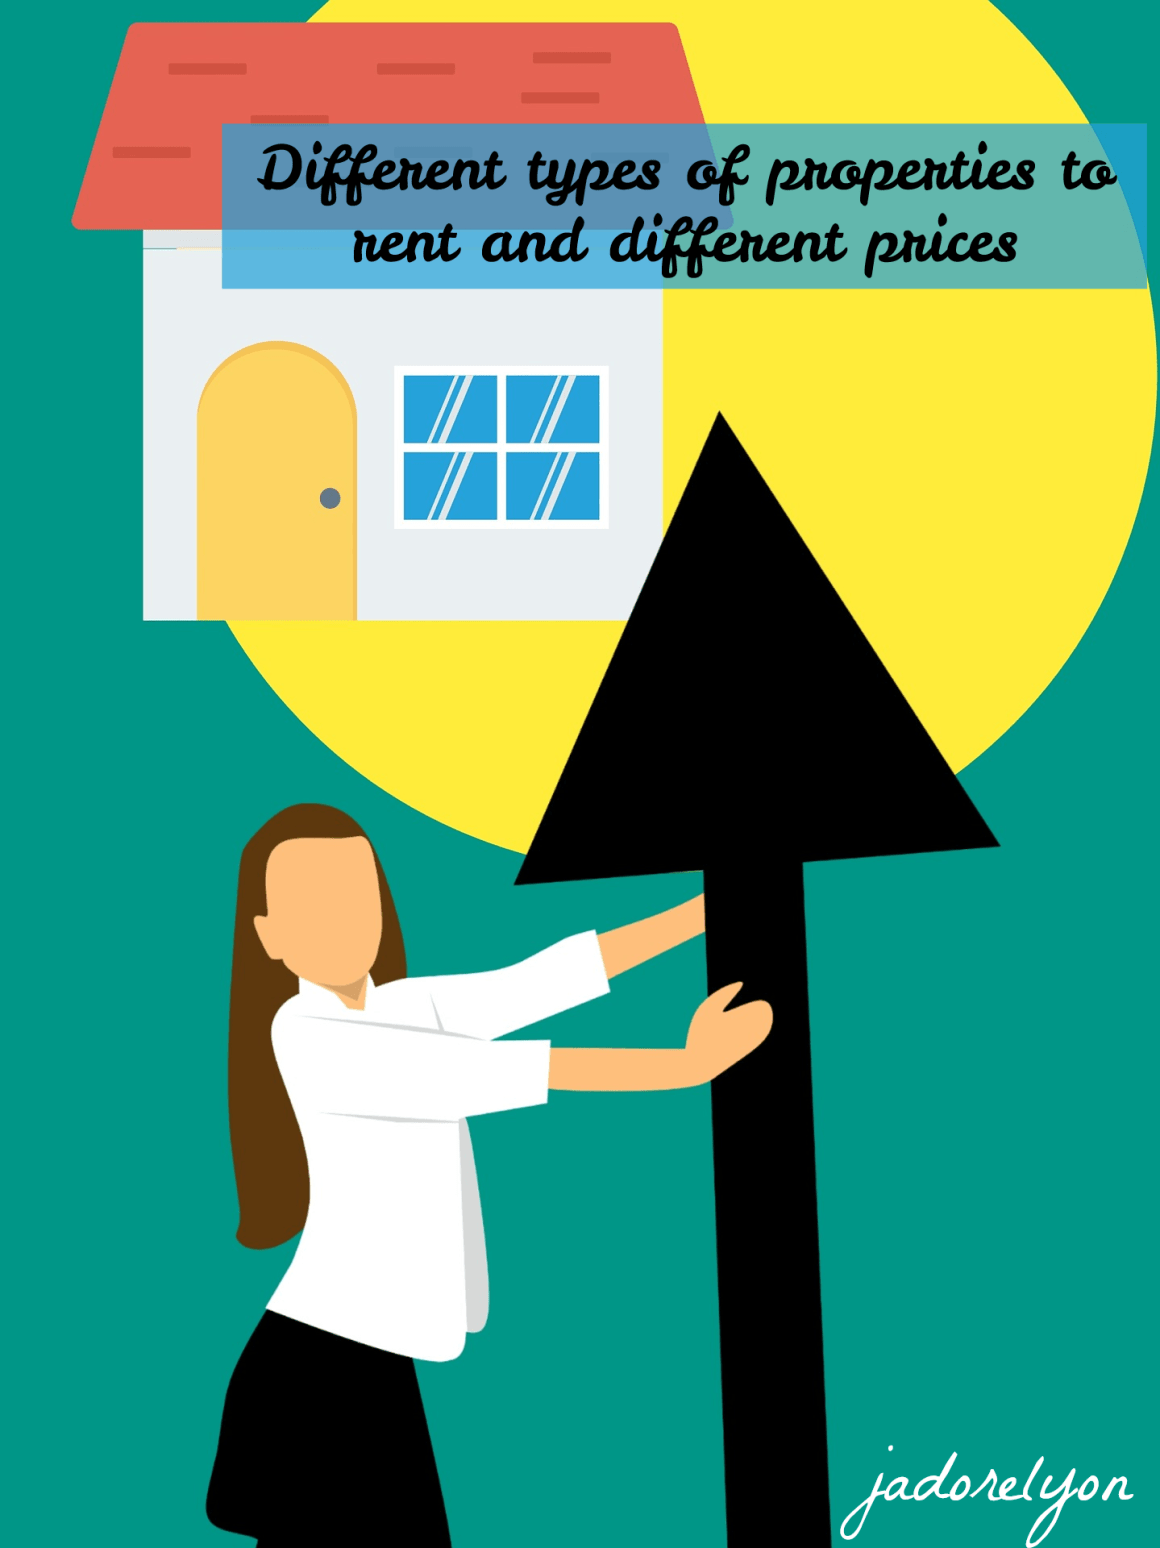 Different types of properties and different prices